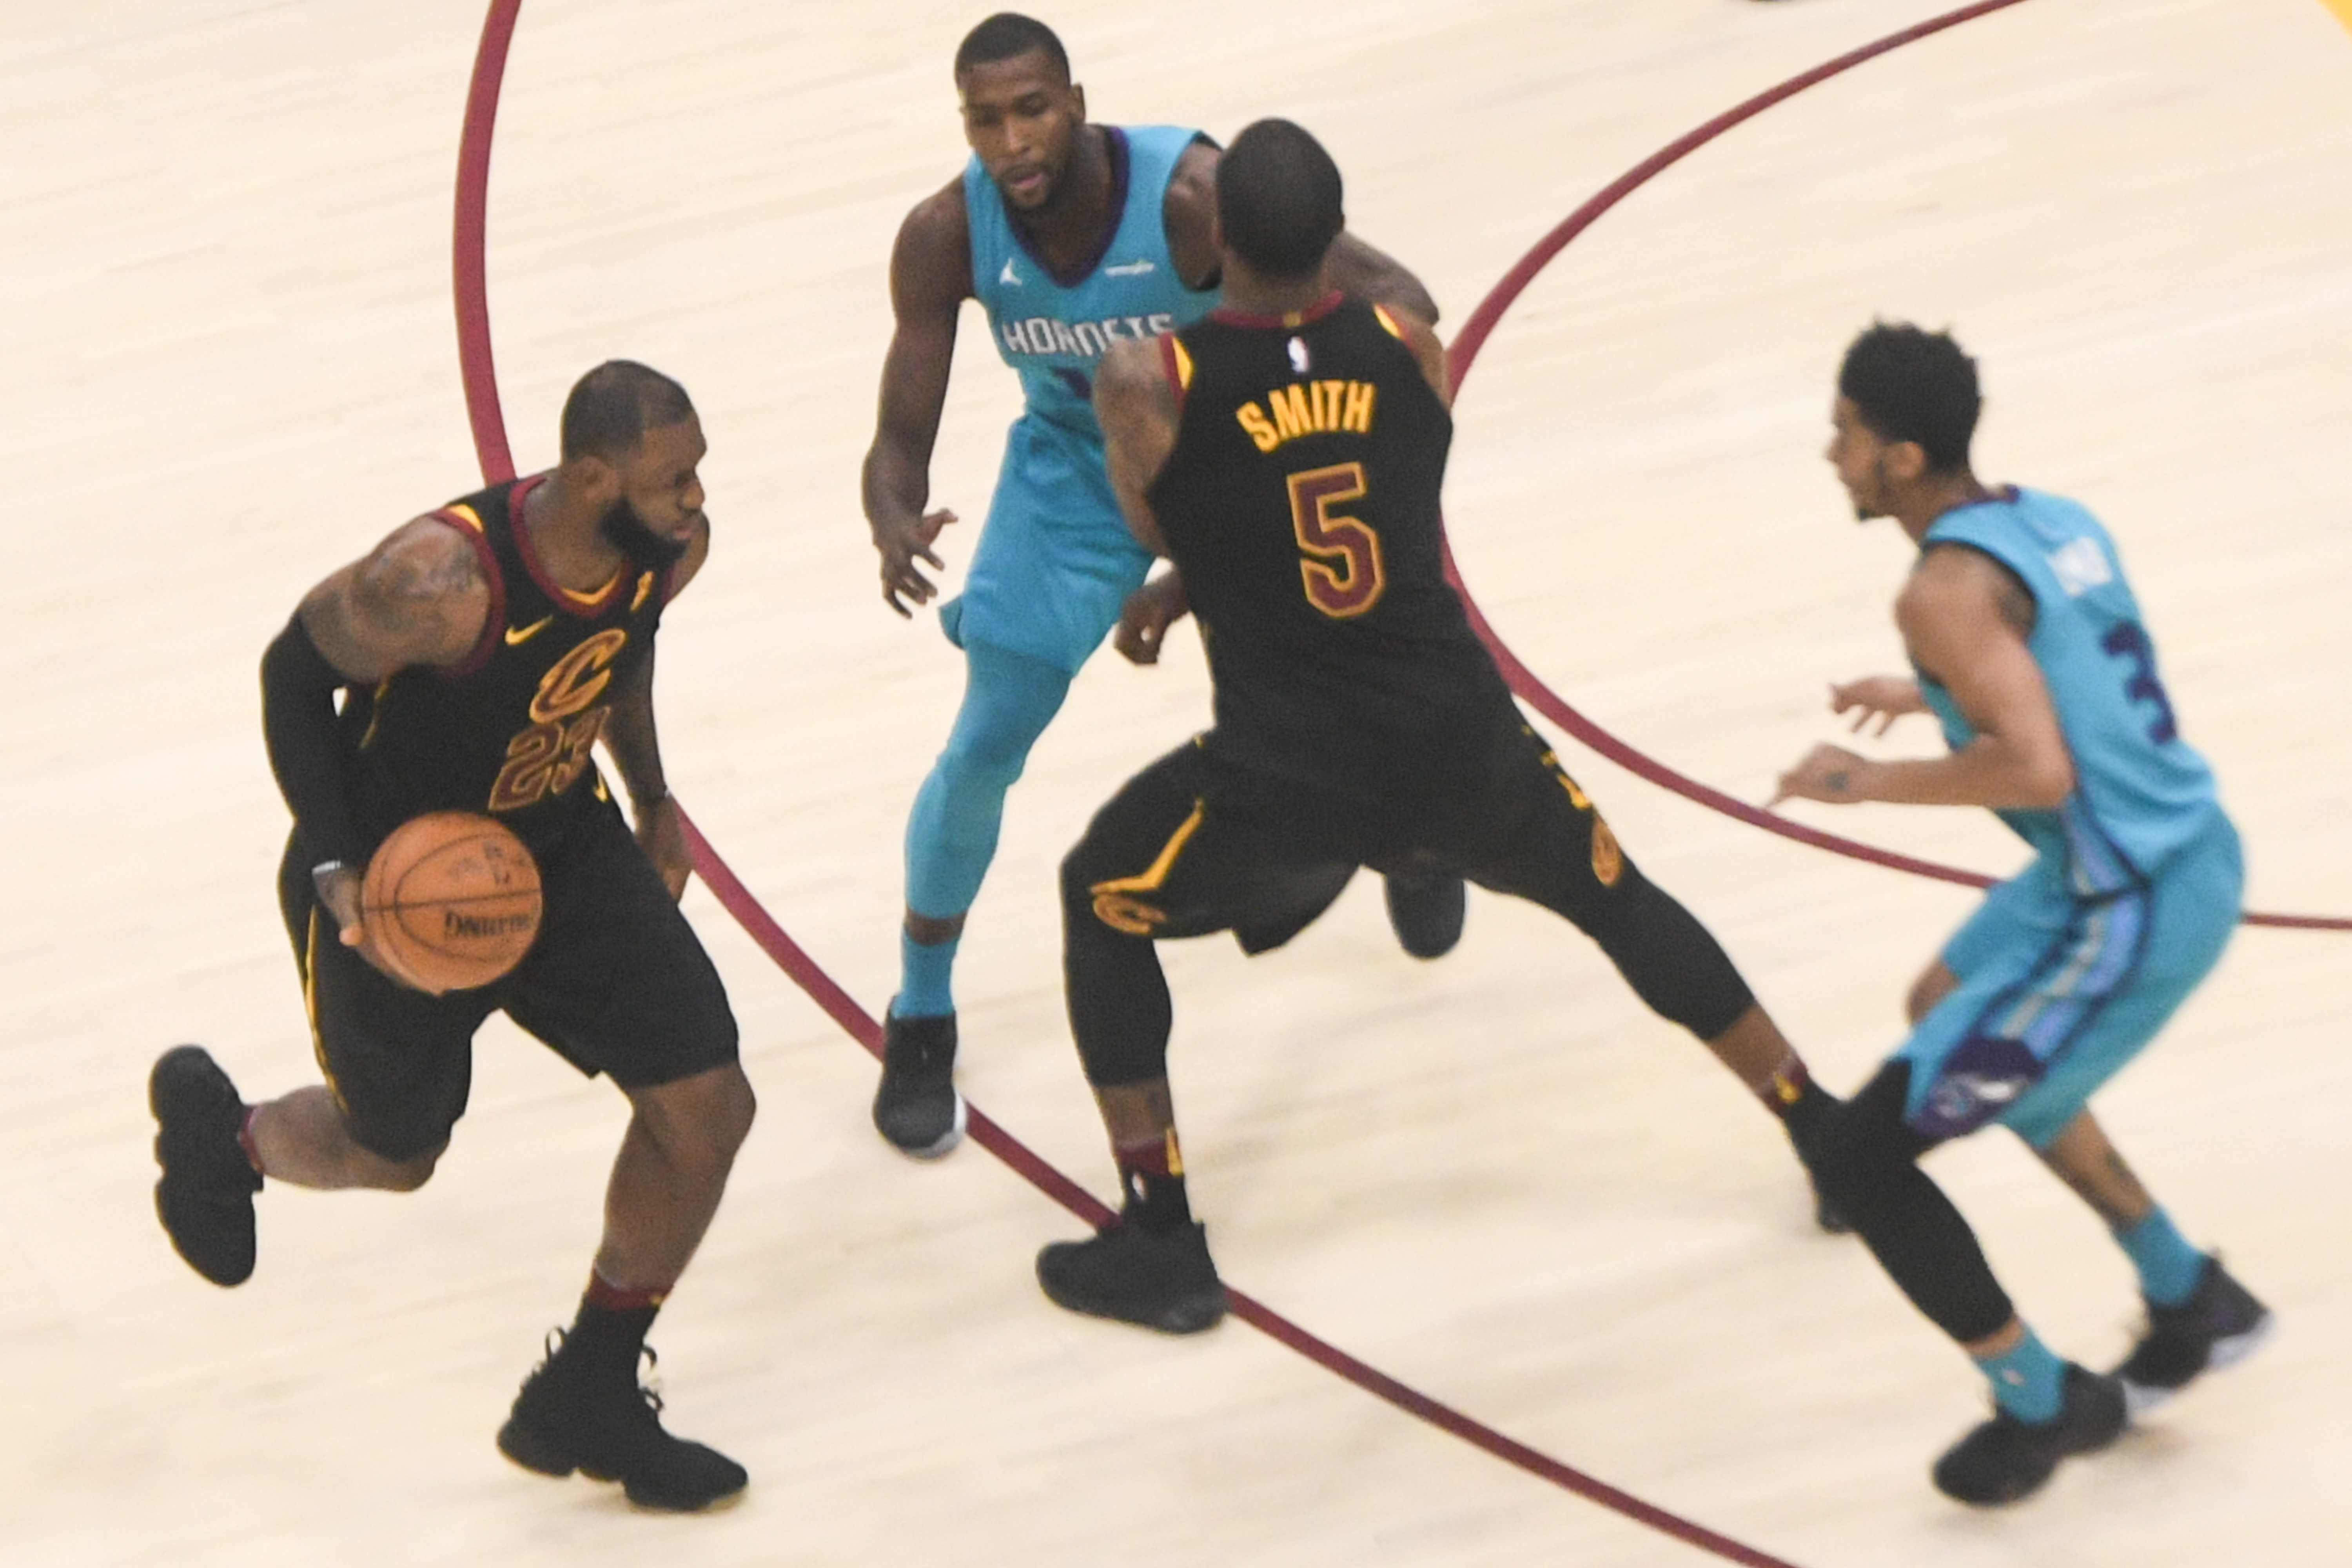 A photograph shows LeBron James dribbling a basketball during a basketball game